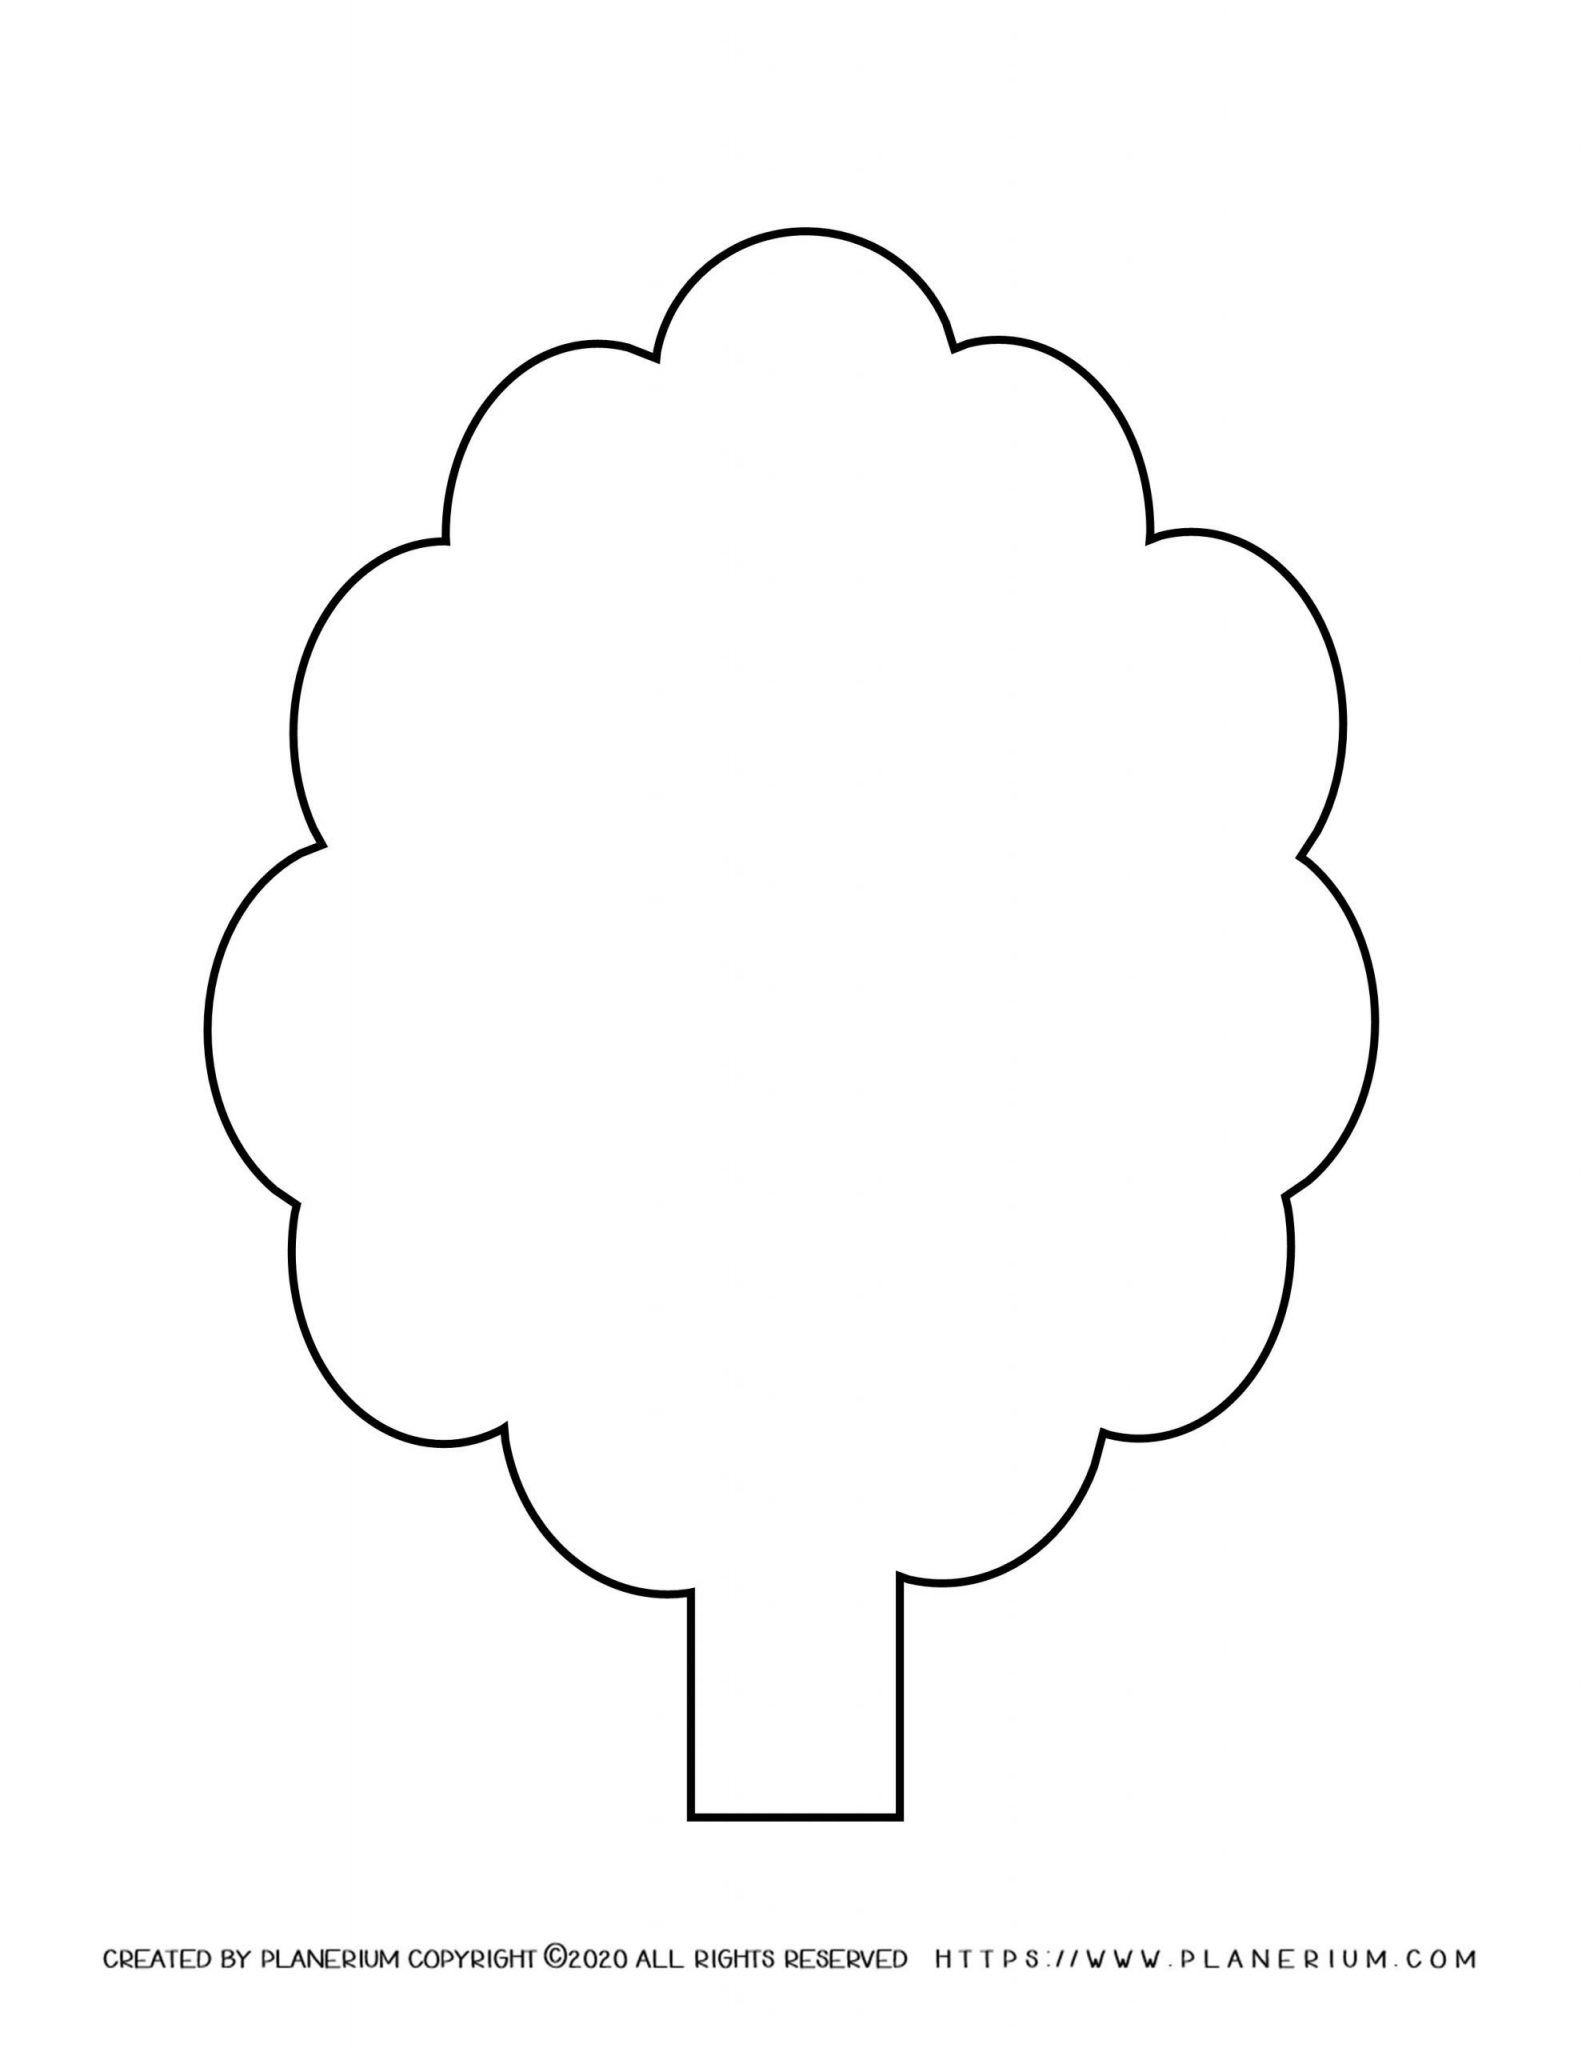 Spring coloring page with a tree template